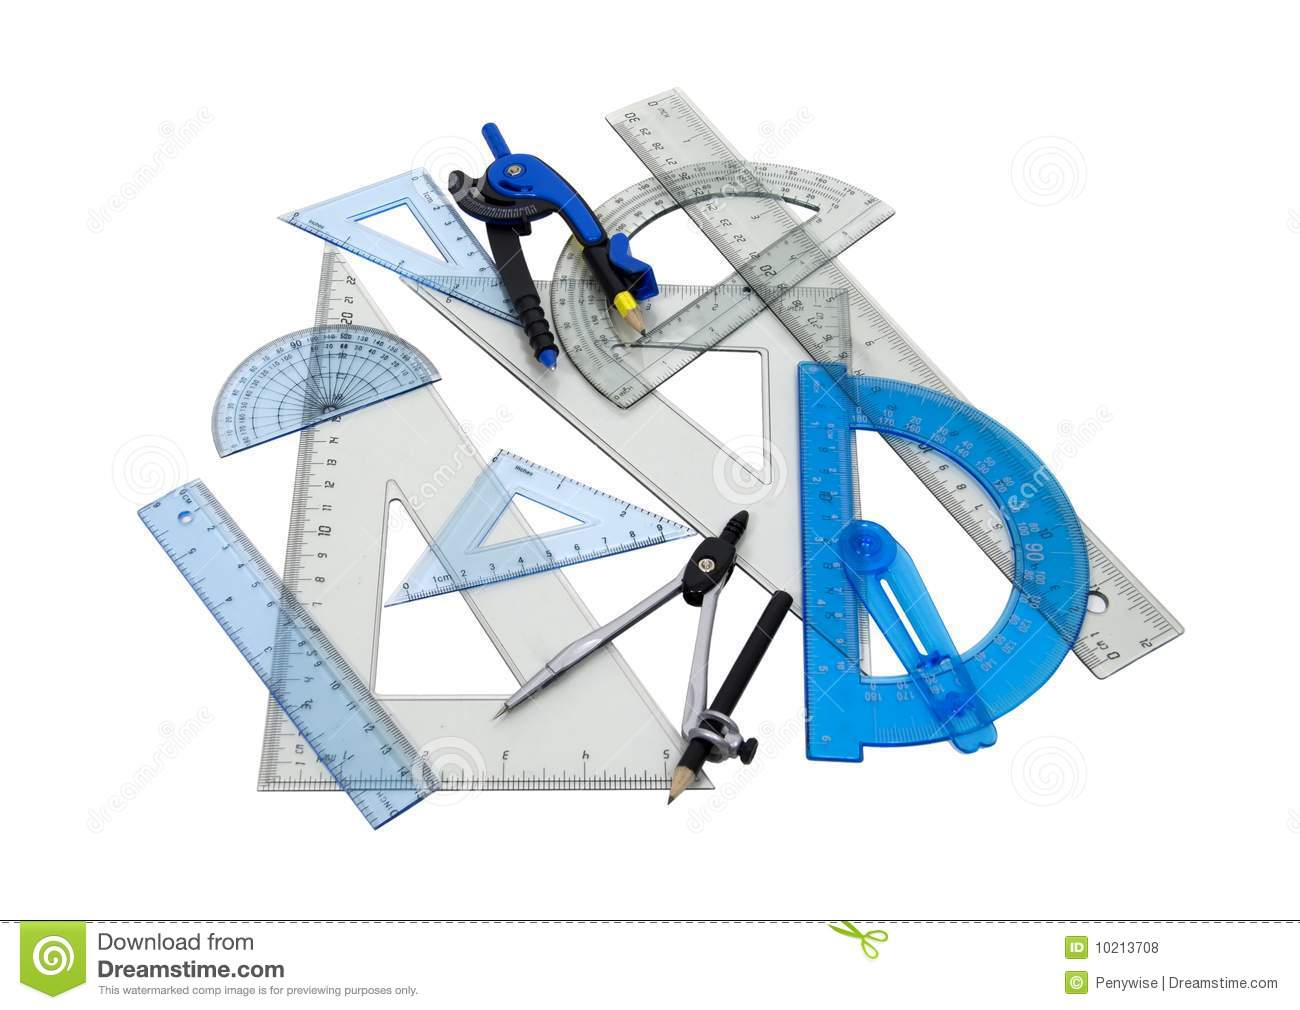 Drafting Tools Royalty Free Stock Photos Image 10213708